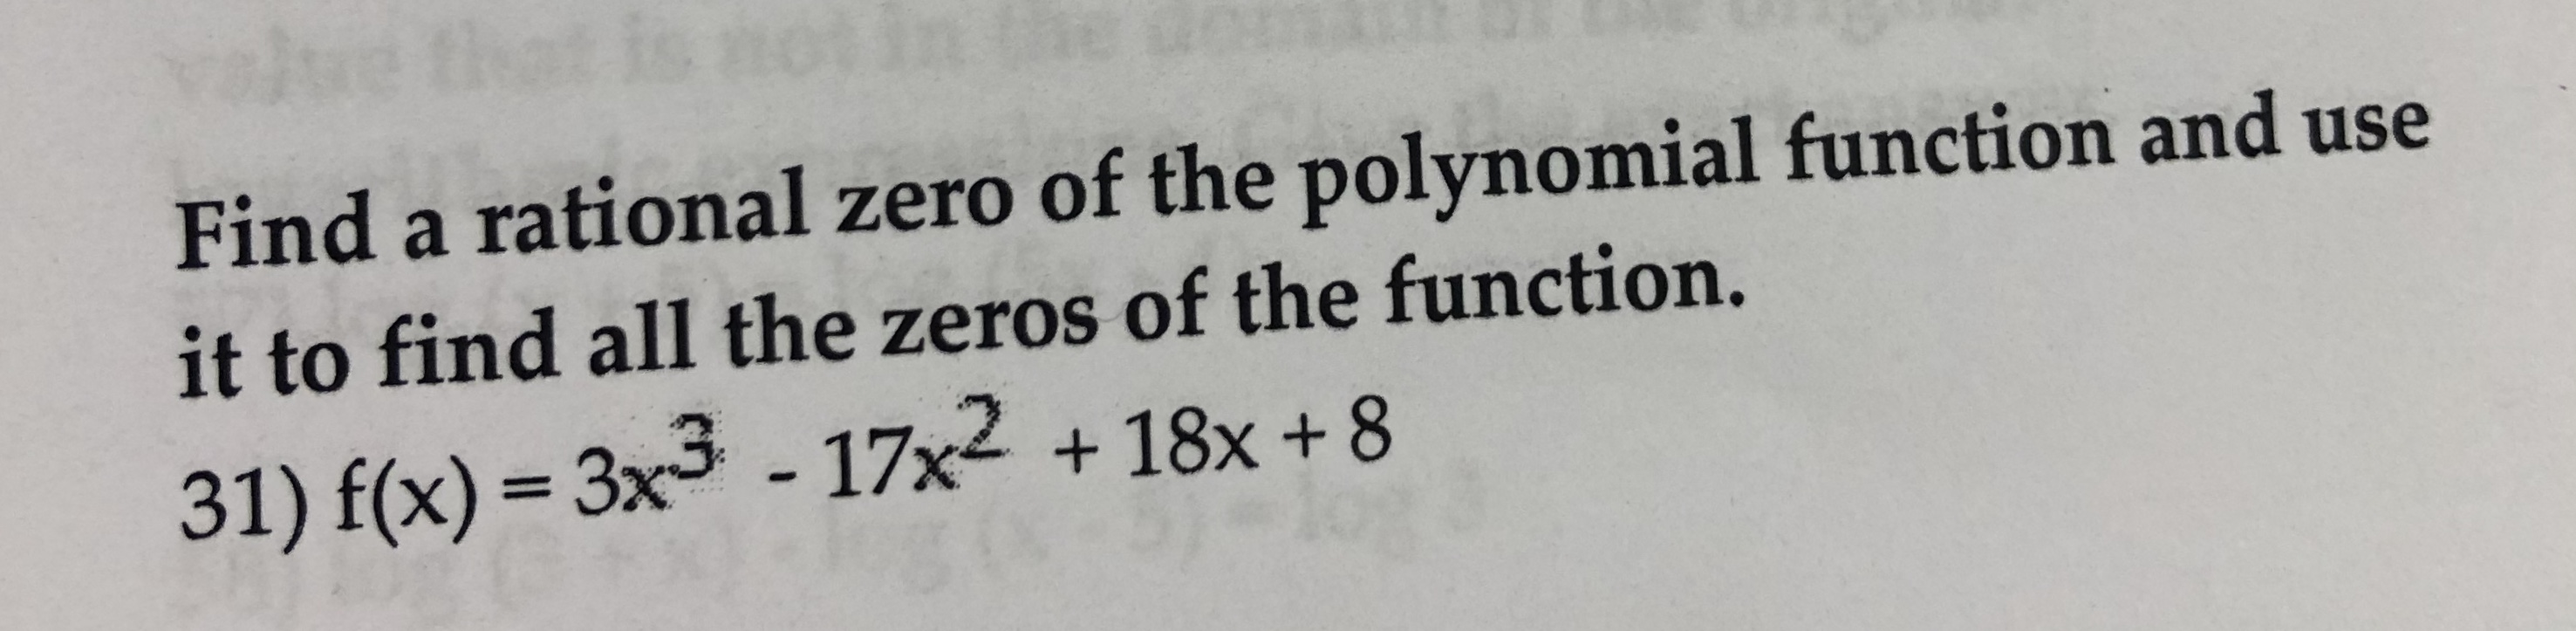 Find a rational zero of the polynomial function and use it to find all the zeros of the function. 31) f(x)-3x3 - 17x2 + 18x +8